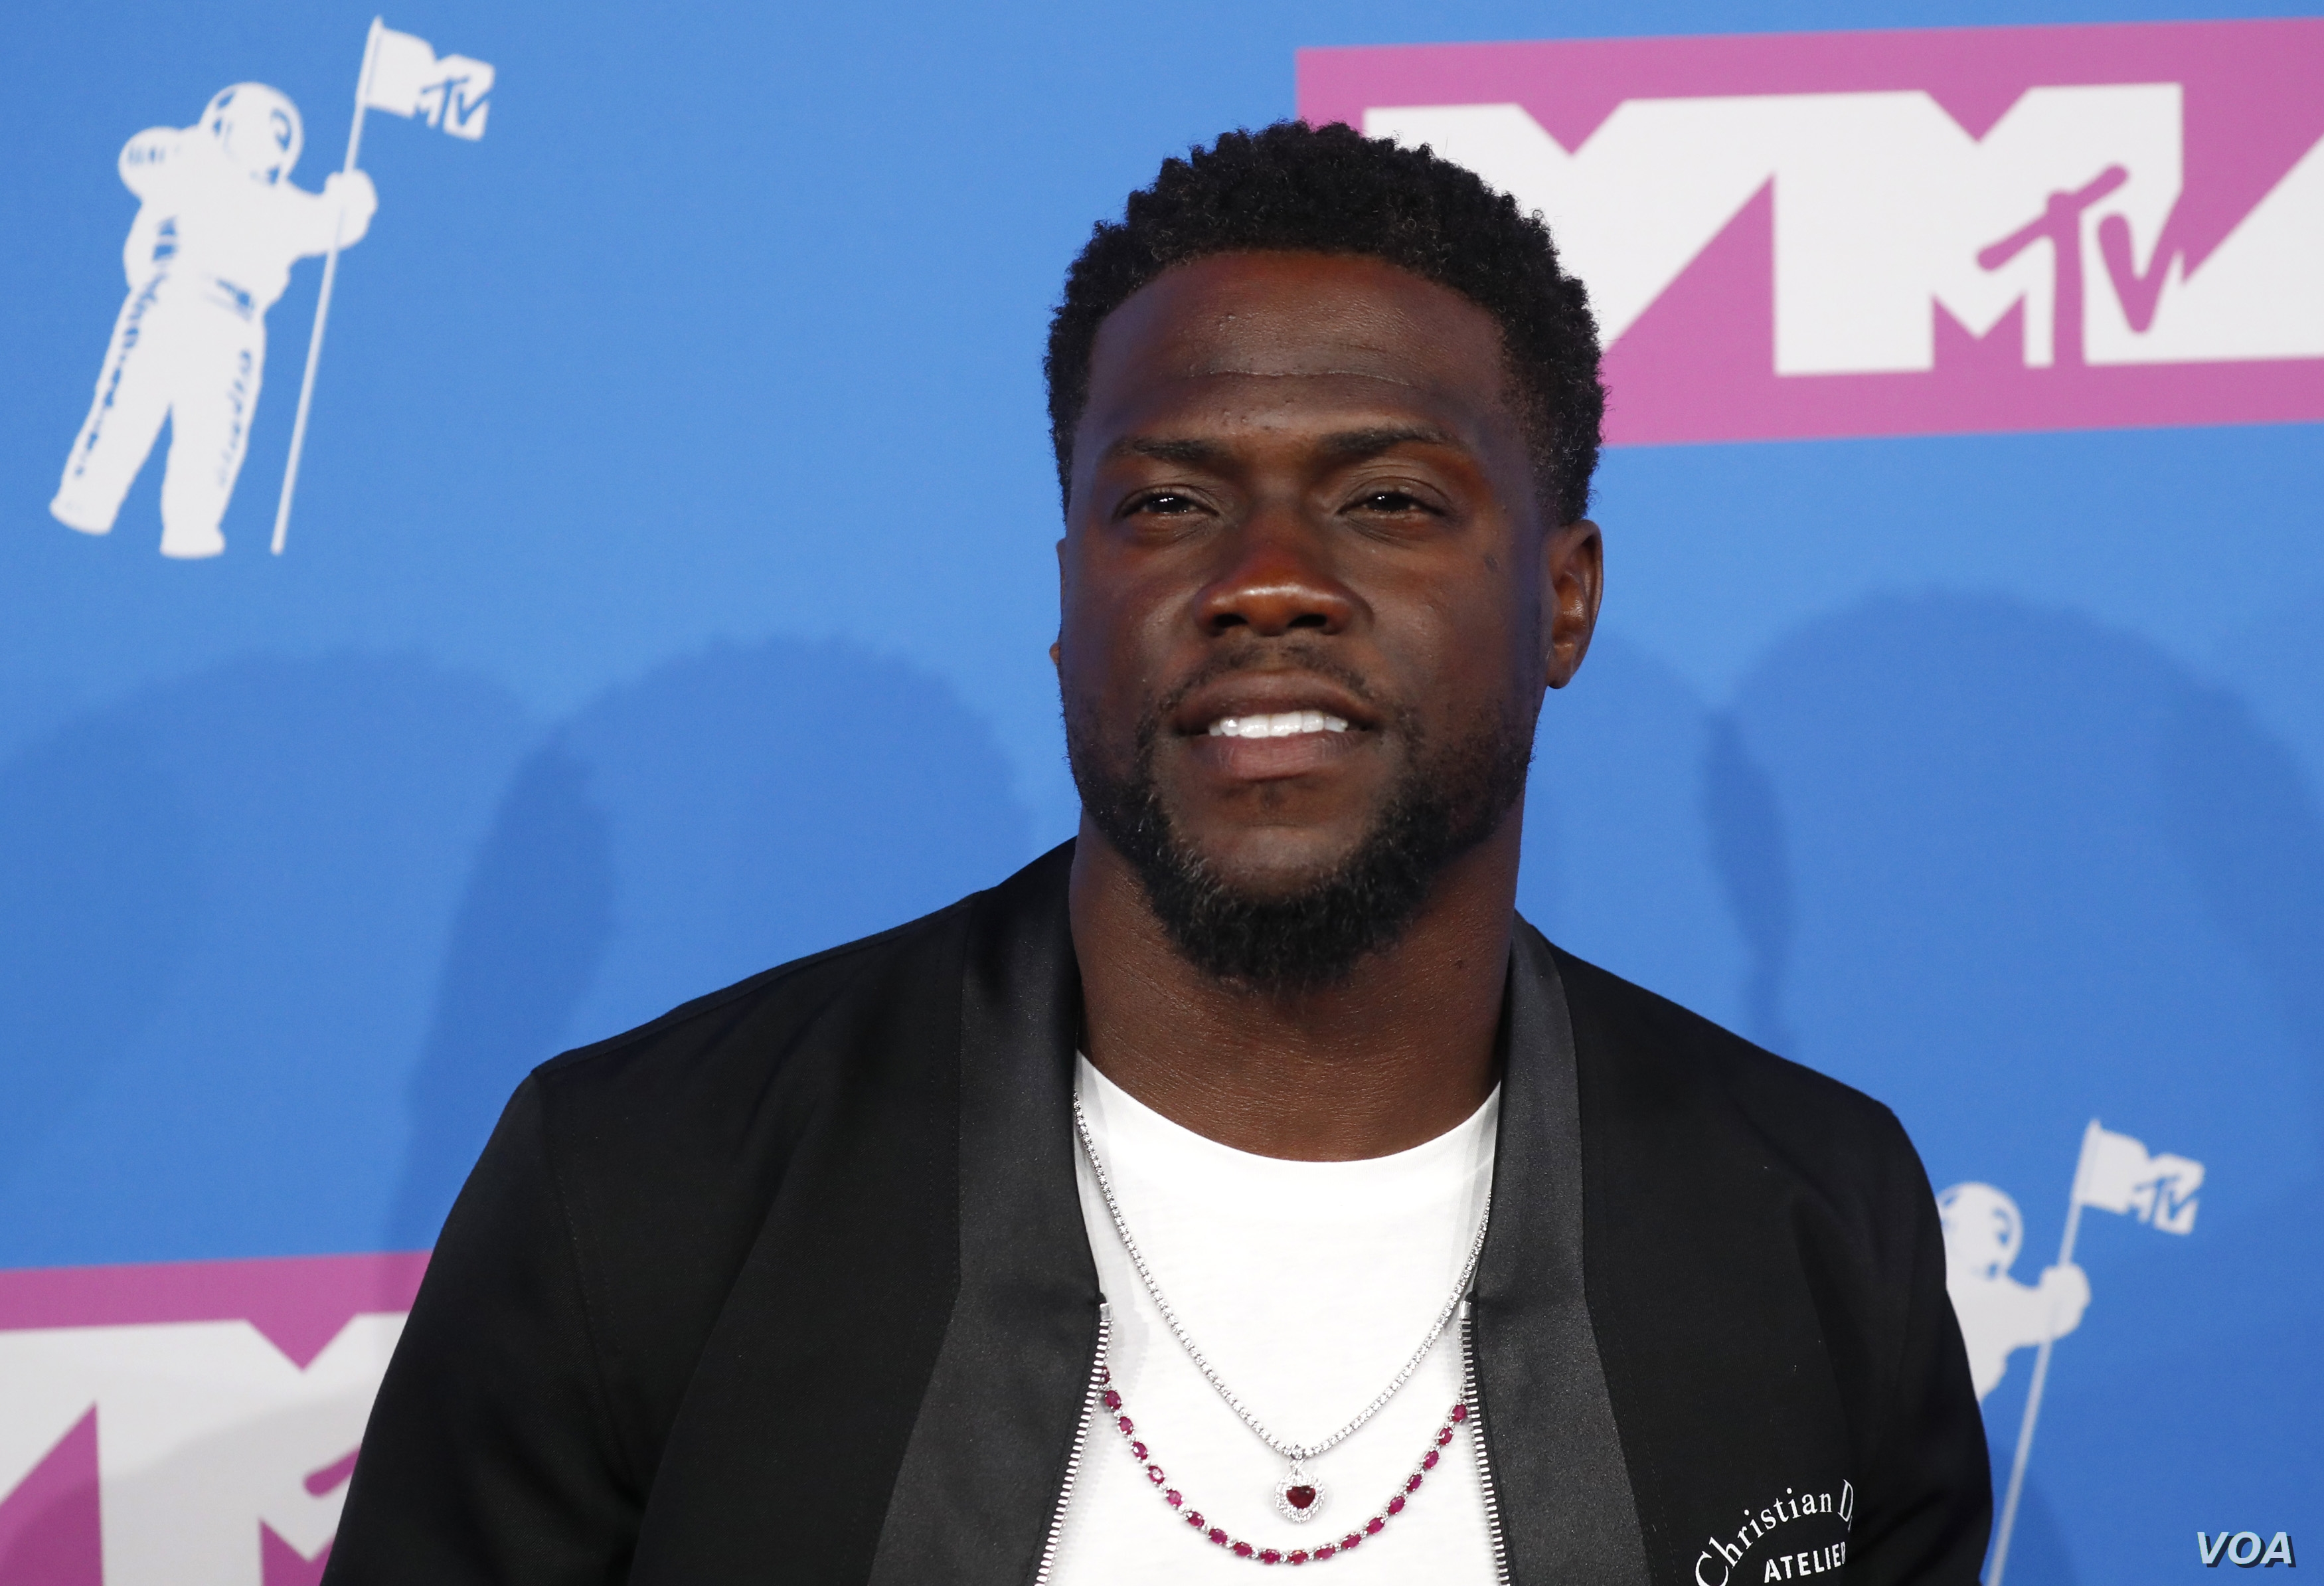 Kevin Hart was born in Philadelphia | 15 Kevin Hart Facts That Will Surprise You | Her Beauty